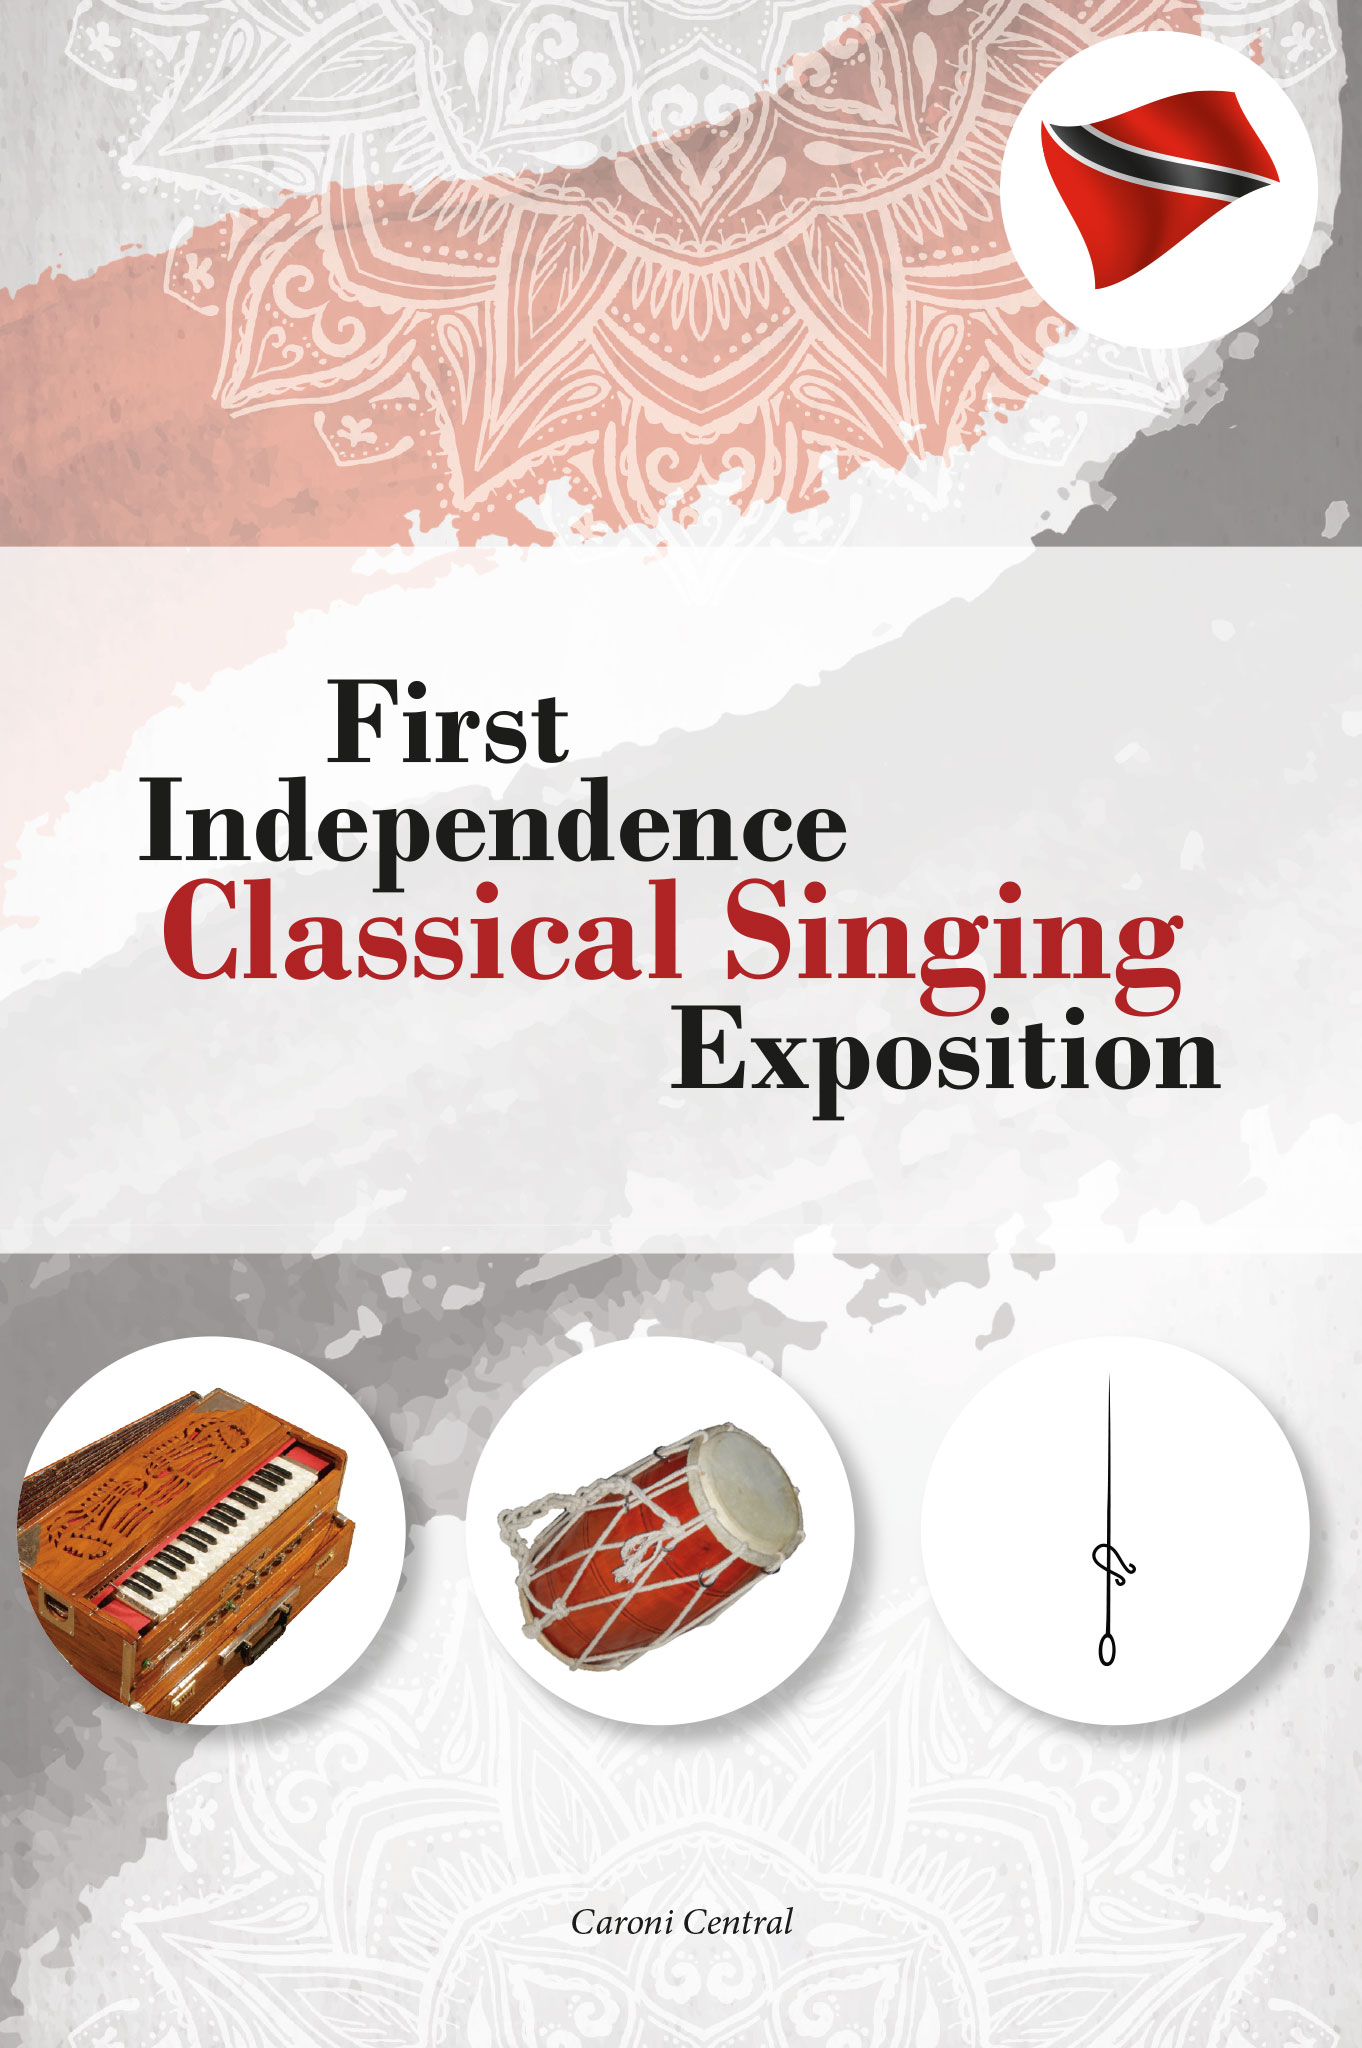 First Independence Classical Singing Exposition